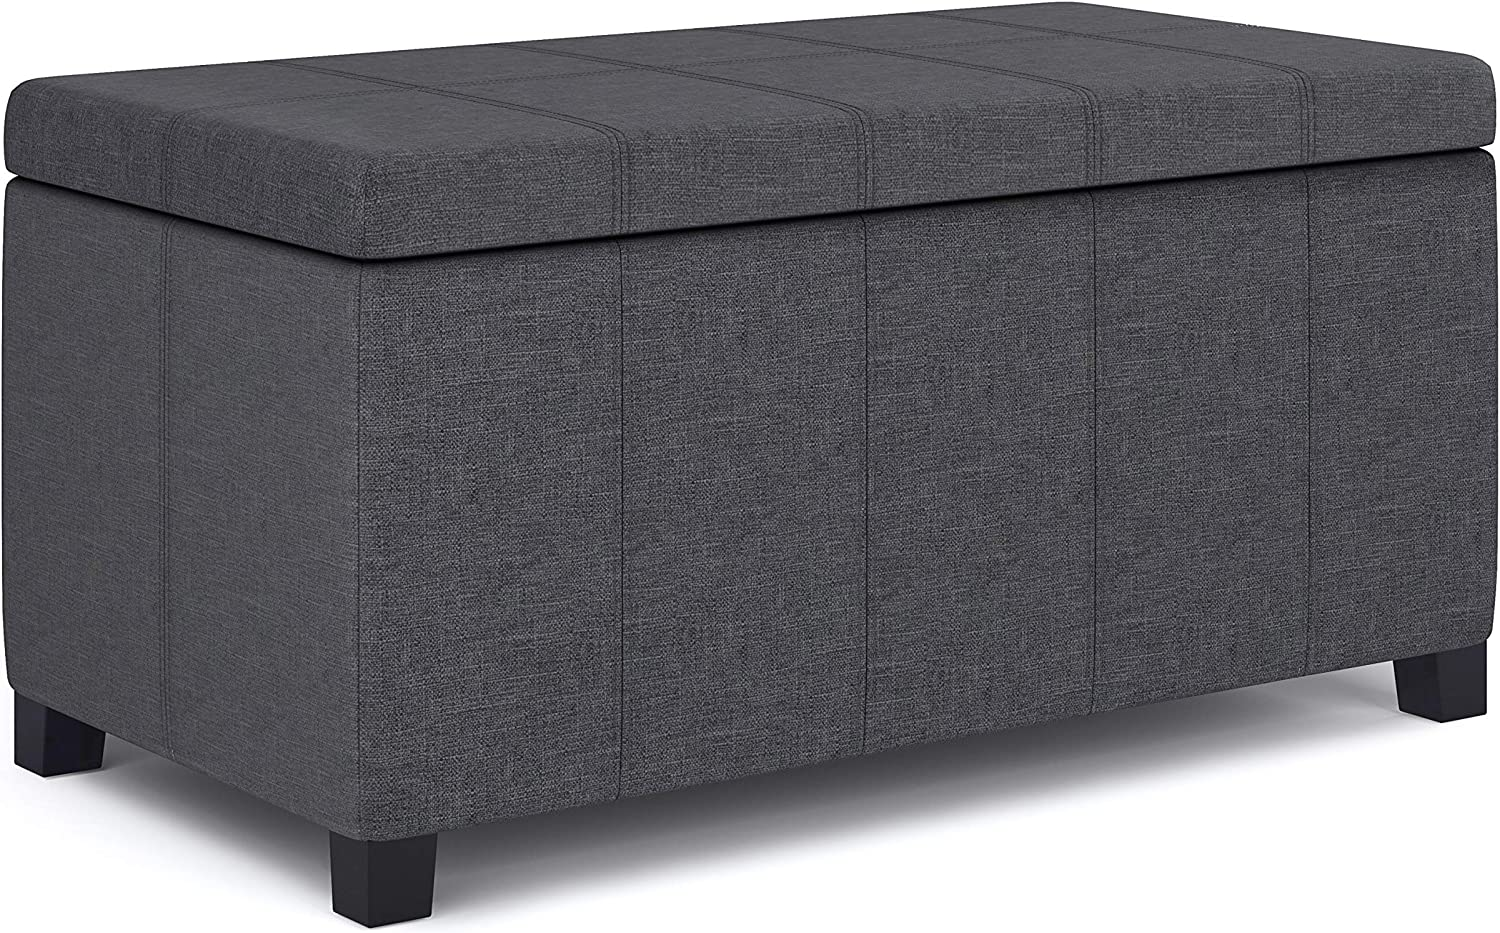 SIMPLIHOME Dover 36 inch Wide Contemporary Rectangle Storage Ottoman Bench in Slate Grey Linen Look Fabric